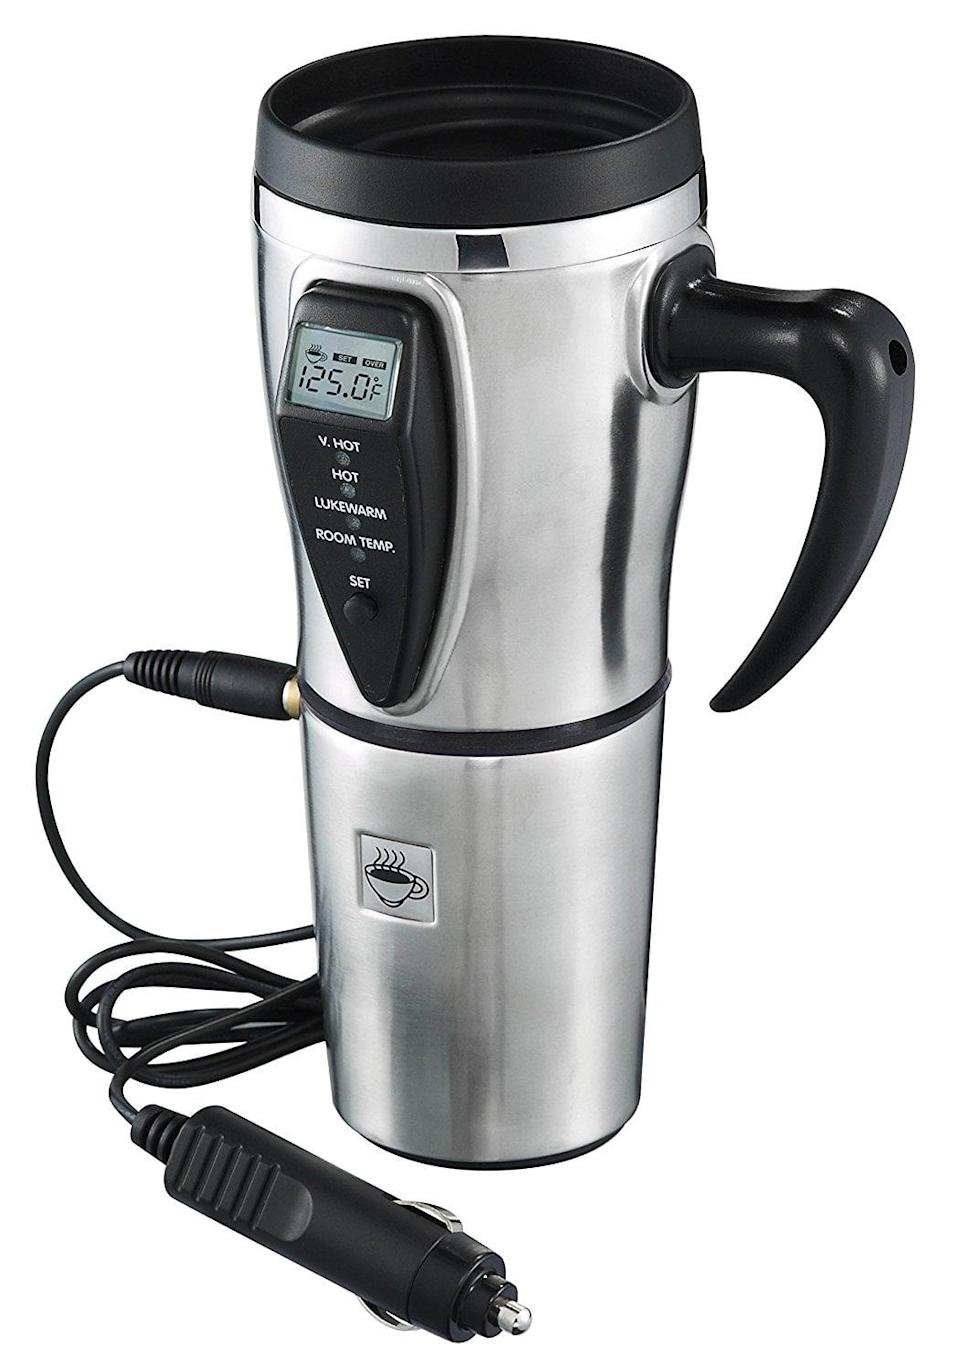 """<p>Keep coffee piping hot with this <a href=""""https://www.popsugar.com/buy/Tech-Tools-Heated-Smart-Travel-Mug-494156?p_name=Tech%20Tools%20Heated%20Smart%20Travel%20Mug&retailer=amazon.com&pid=494156&price=26&evar1=news%3Aus&evar9=36026397&evar98=https%3A%2F%2Fwww.popsugar.com%2Fnews%2Fphoto-gallery%2F36026397%2Fimage%2F45606082%2FTech-Tools-Heated-Smart-Travel-Mug&list1=gifts%2Choliday%2Cchristmas%2Cgift%20guide%2Cdigital%20life%2Cbudget%20tips%2Ctech%20gifts%2Cgifts%20for%20men%2Cgifts%20under%20%24100%2Cgifts%20under%20%2450%2Cgifts%20under%20%2475&prop13=api&pdata=1"""" class=""""link rapid-noclick-resp"""" rel=""""nofollow noopener"""" target=""""_blank"""" data-ylk=""""slk:Tech Tools Heated Smart Travel Mug"""">Tech Tools Heated Smart Travel Mug</a> ($26).</p>"""